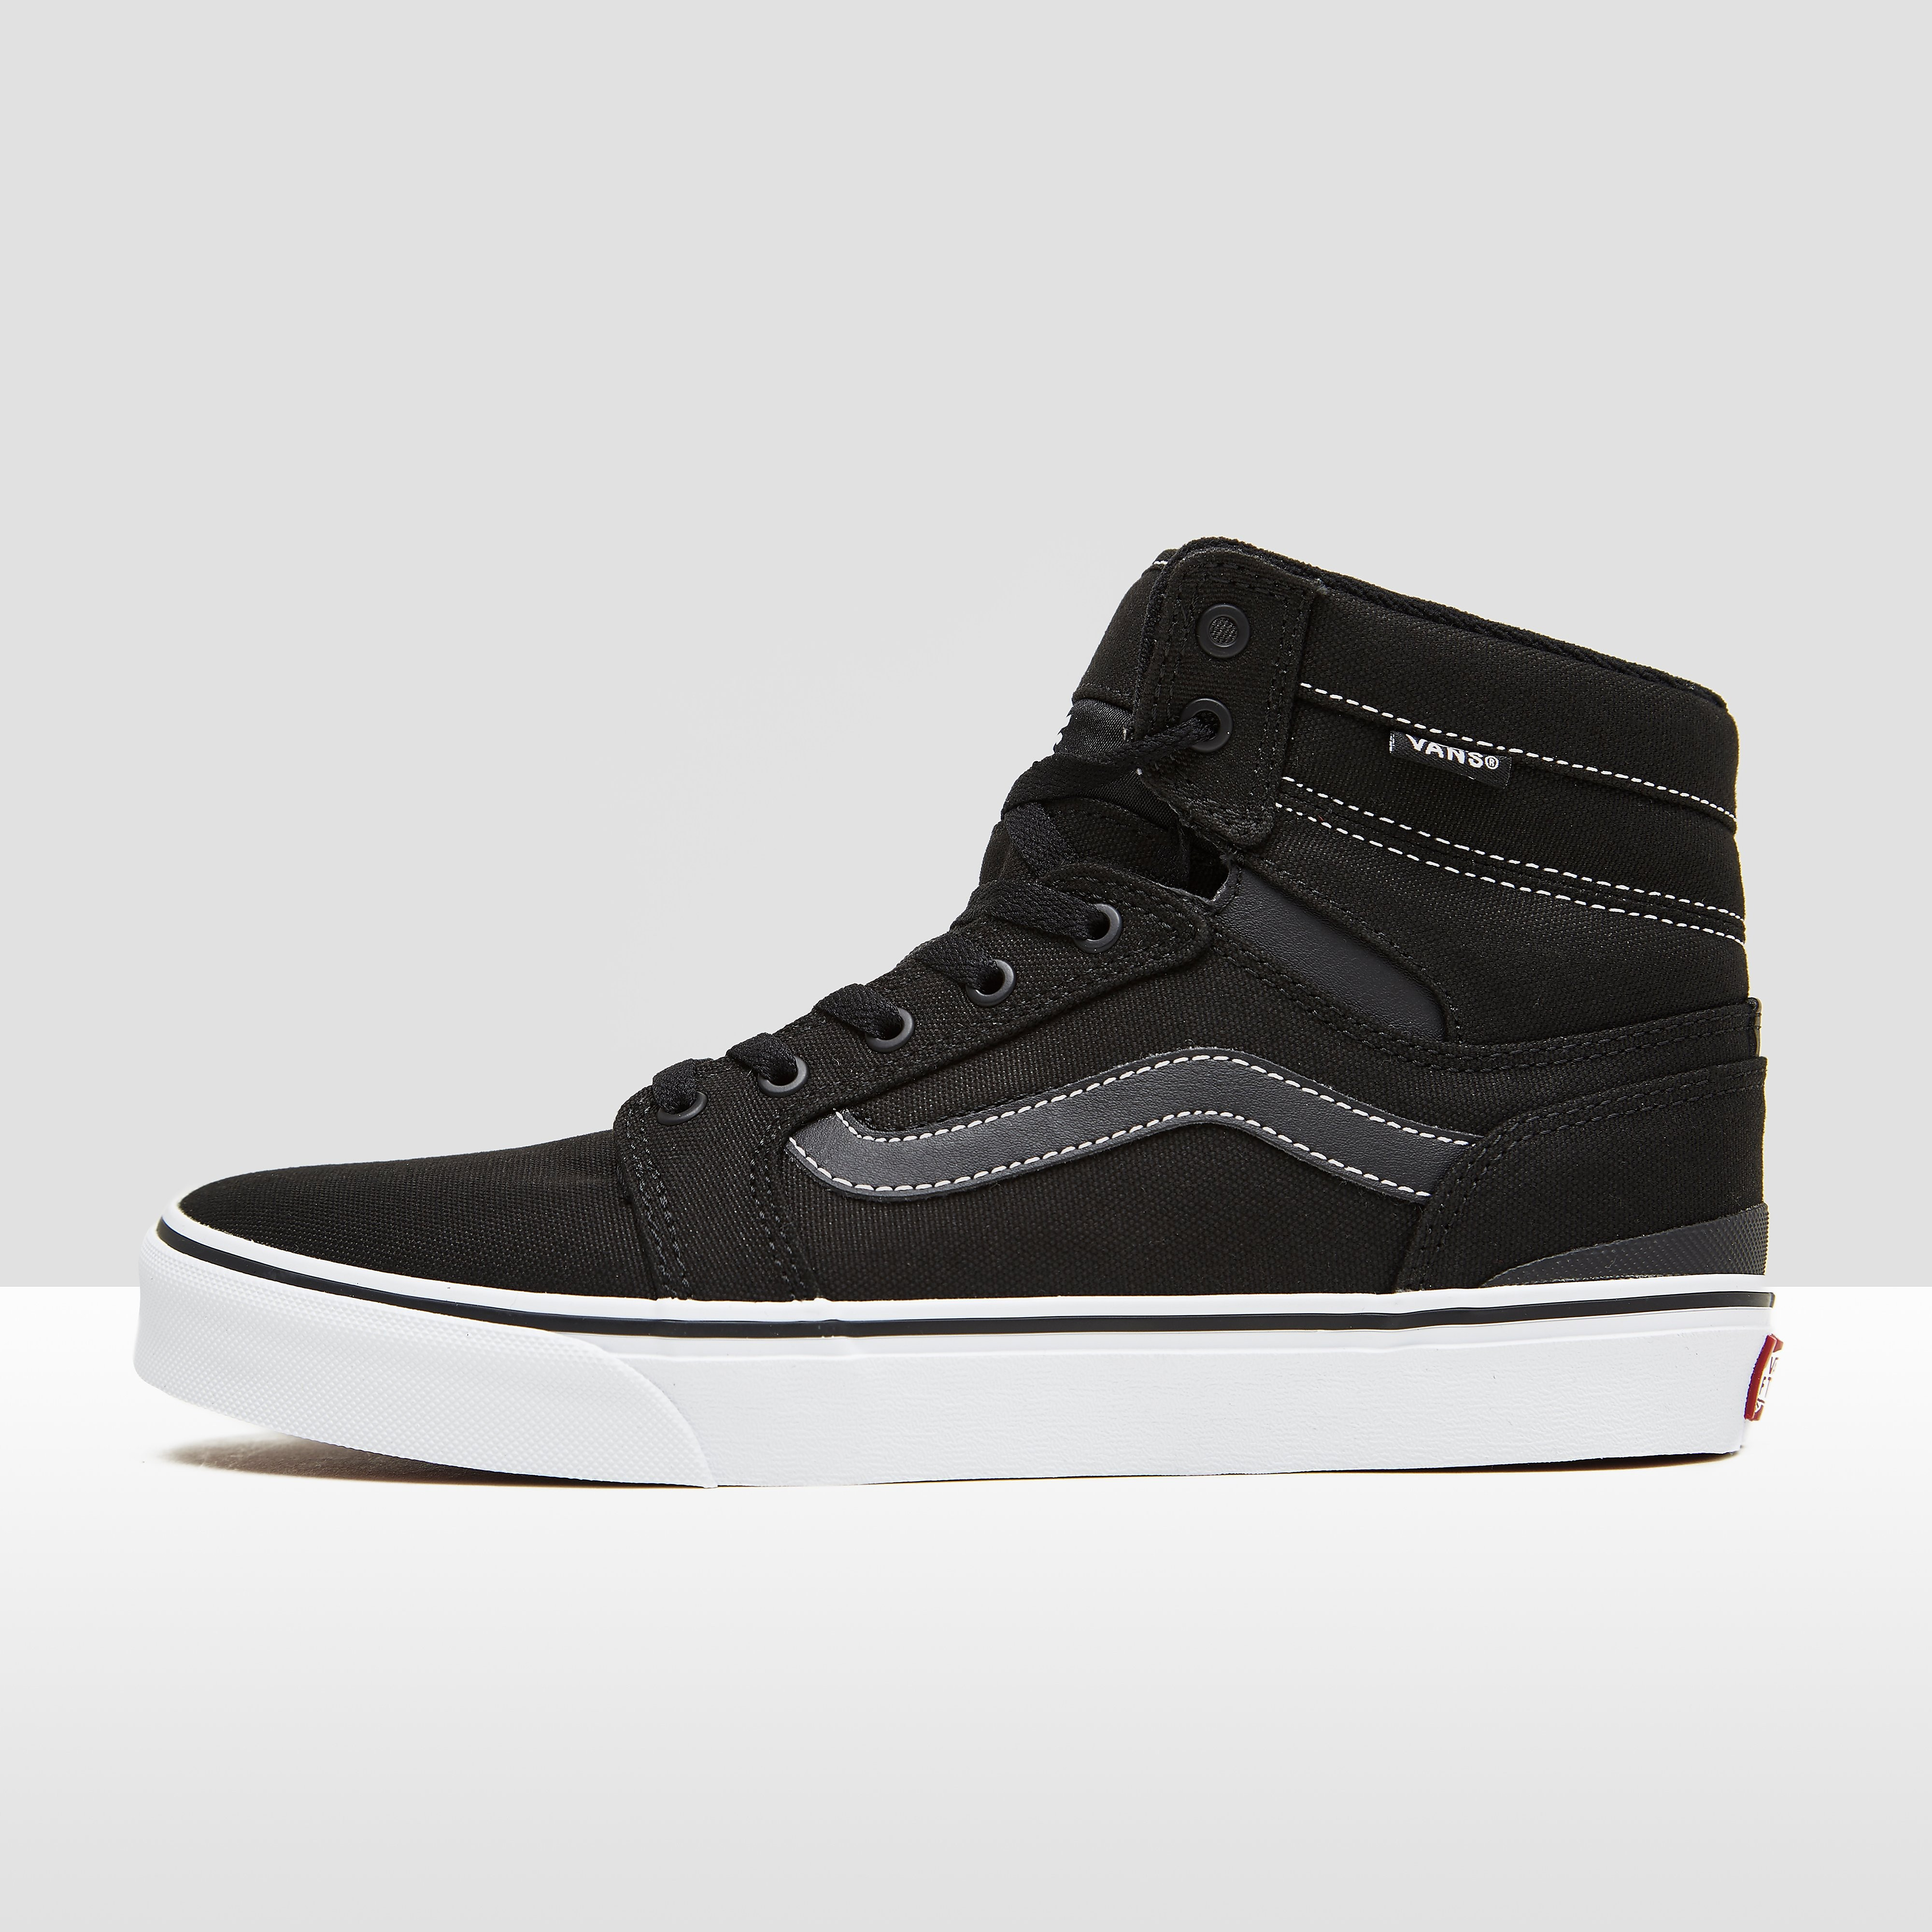 VANS SANCTION SNEAKERS ZWART HEREN